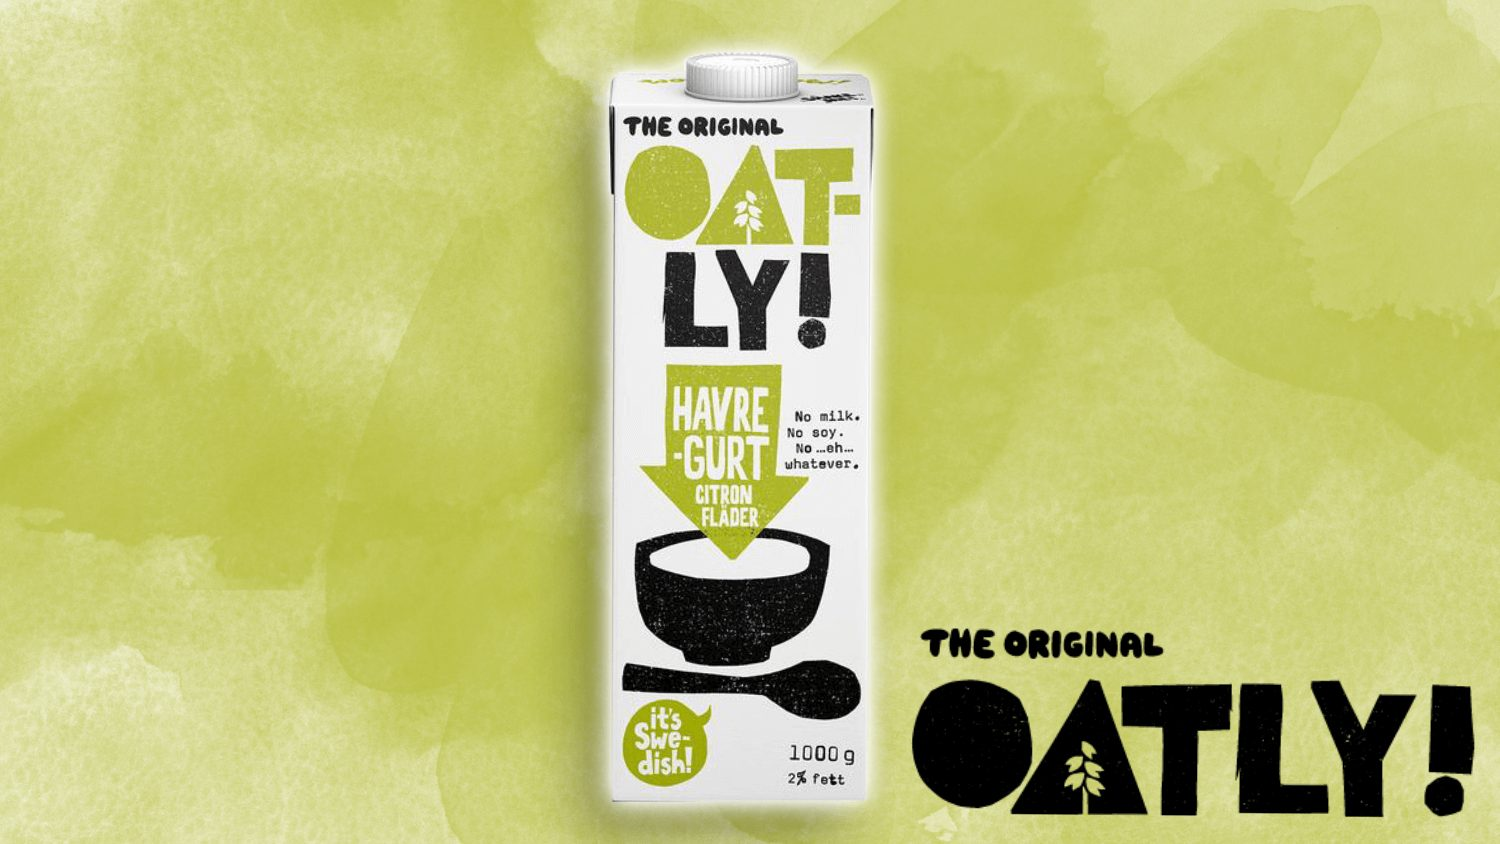 Oatly Launches Dairy-Free Drinkable Yogurt Made From Oats